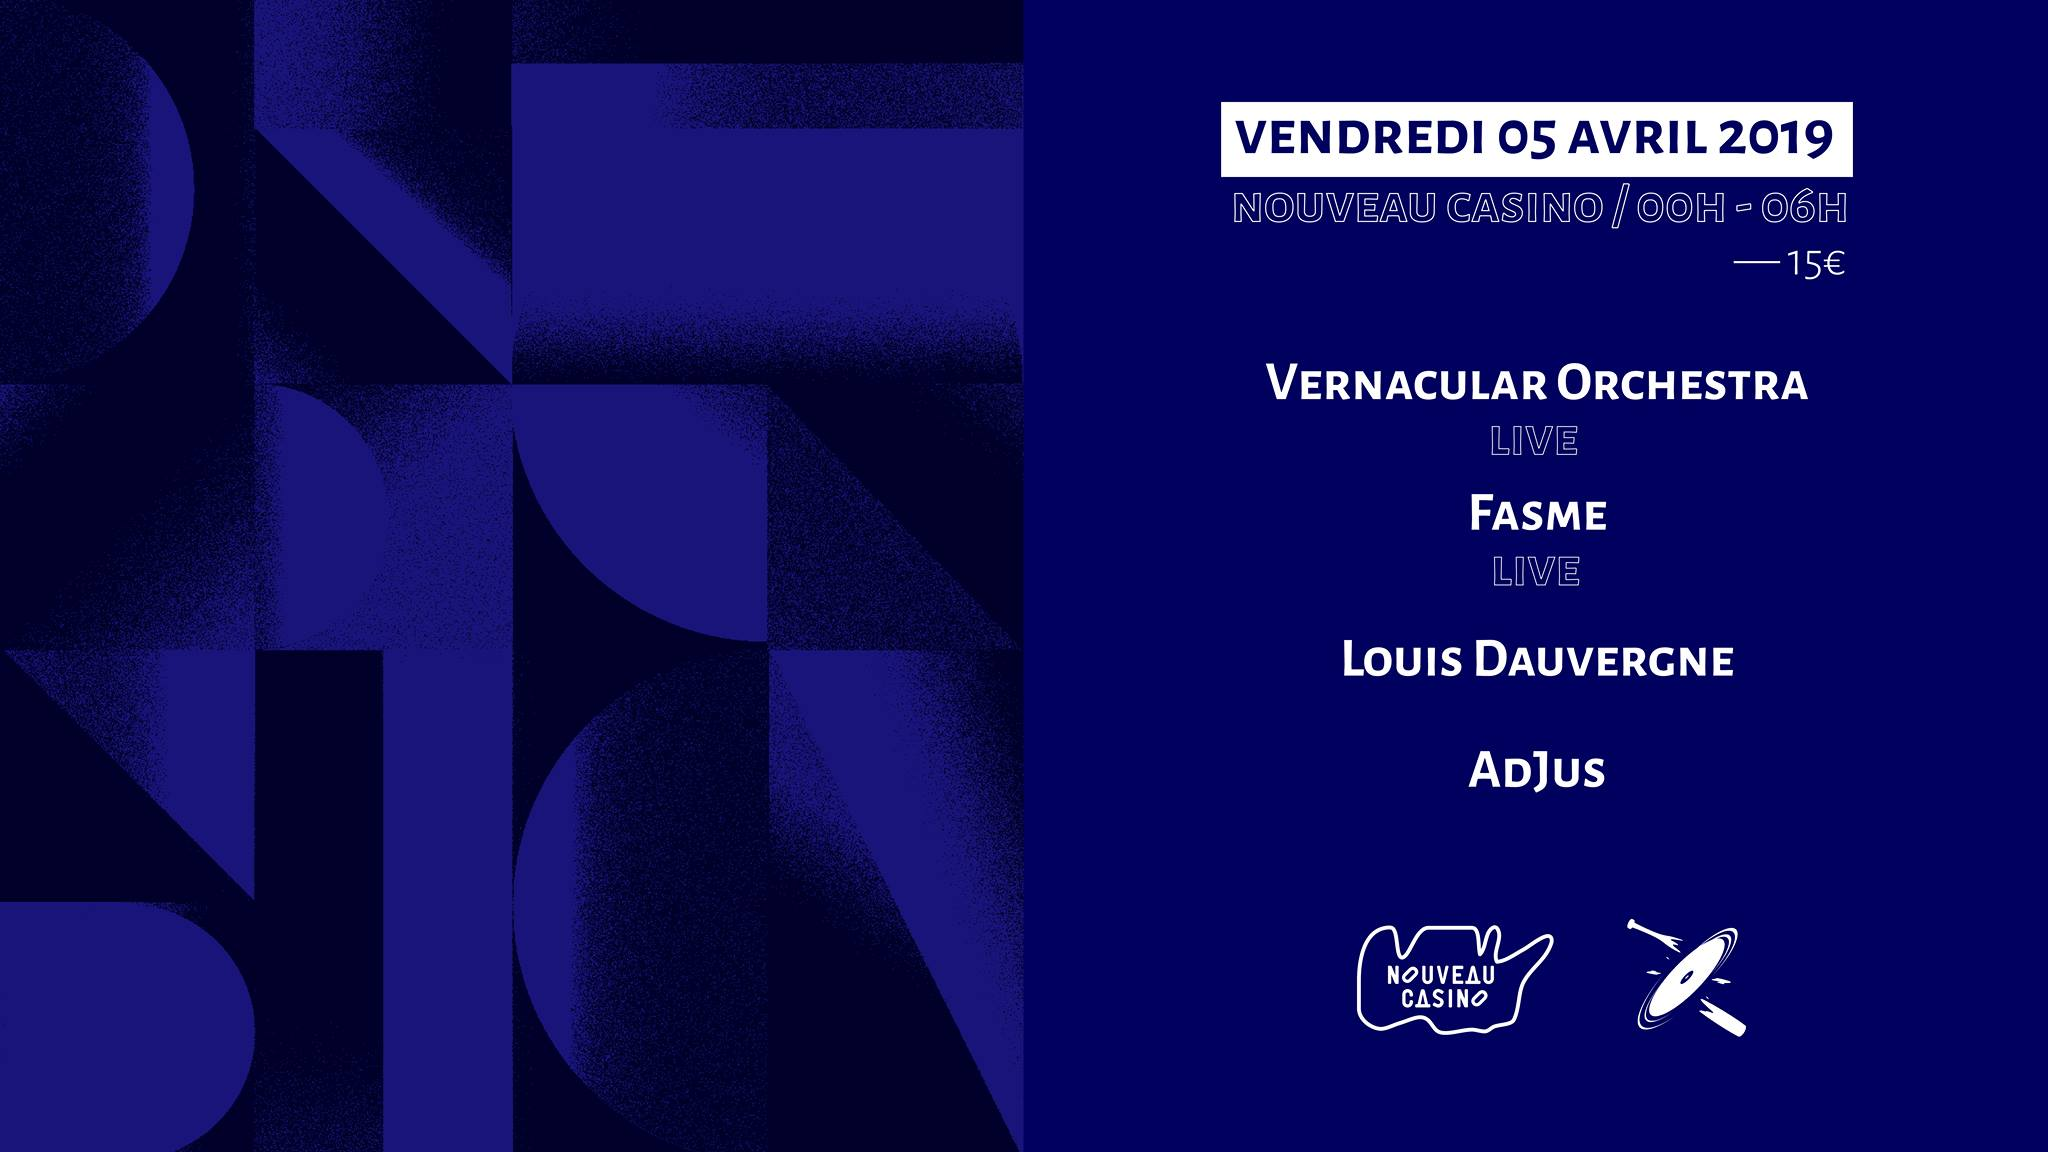 Increase the Groove w/ Vernacular live, Fasme live & more